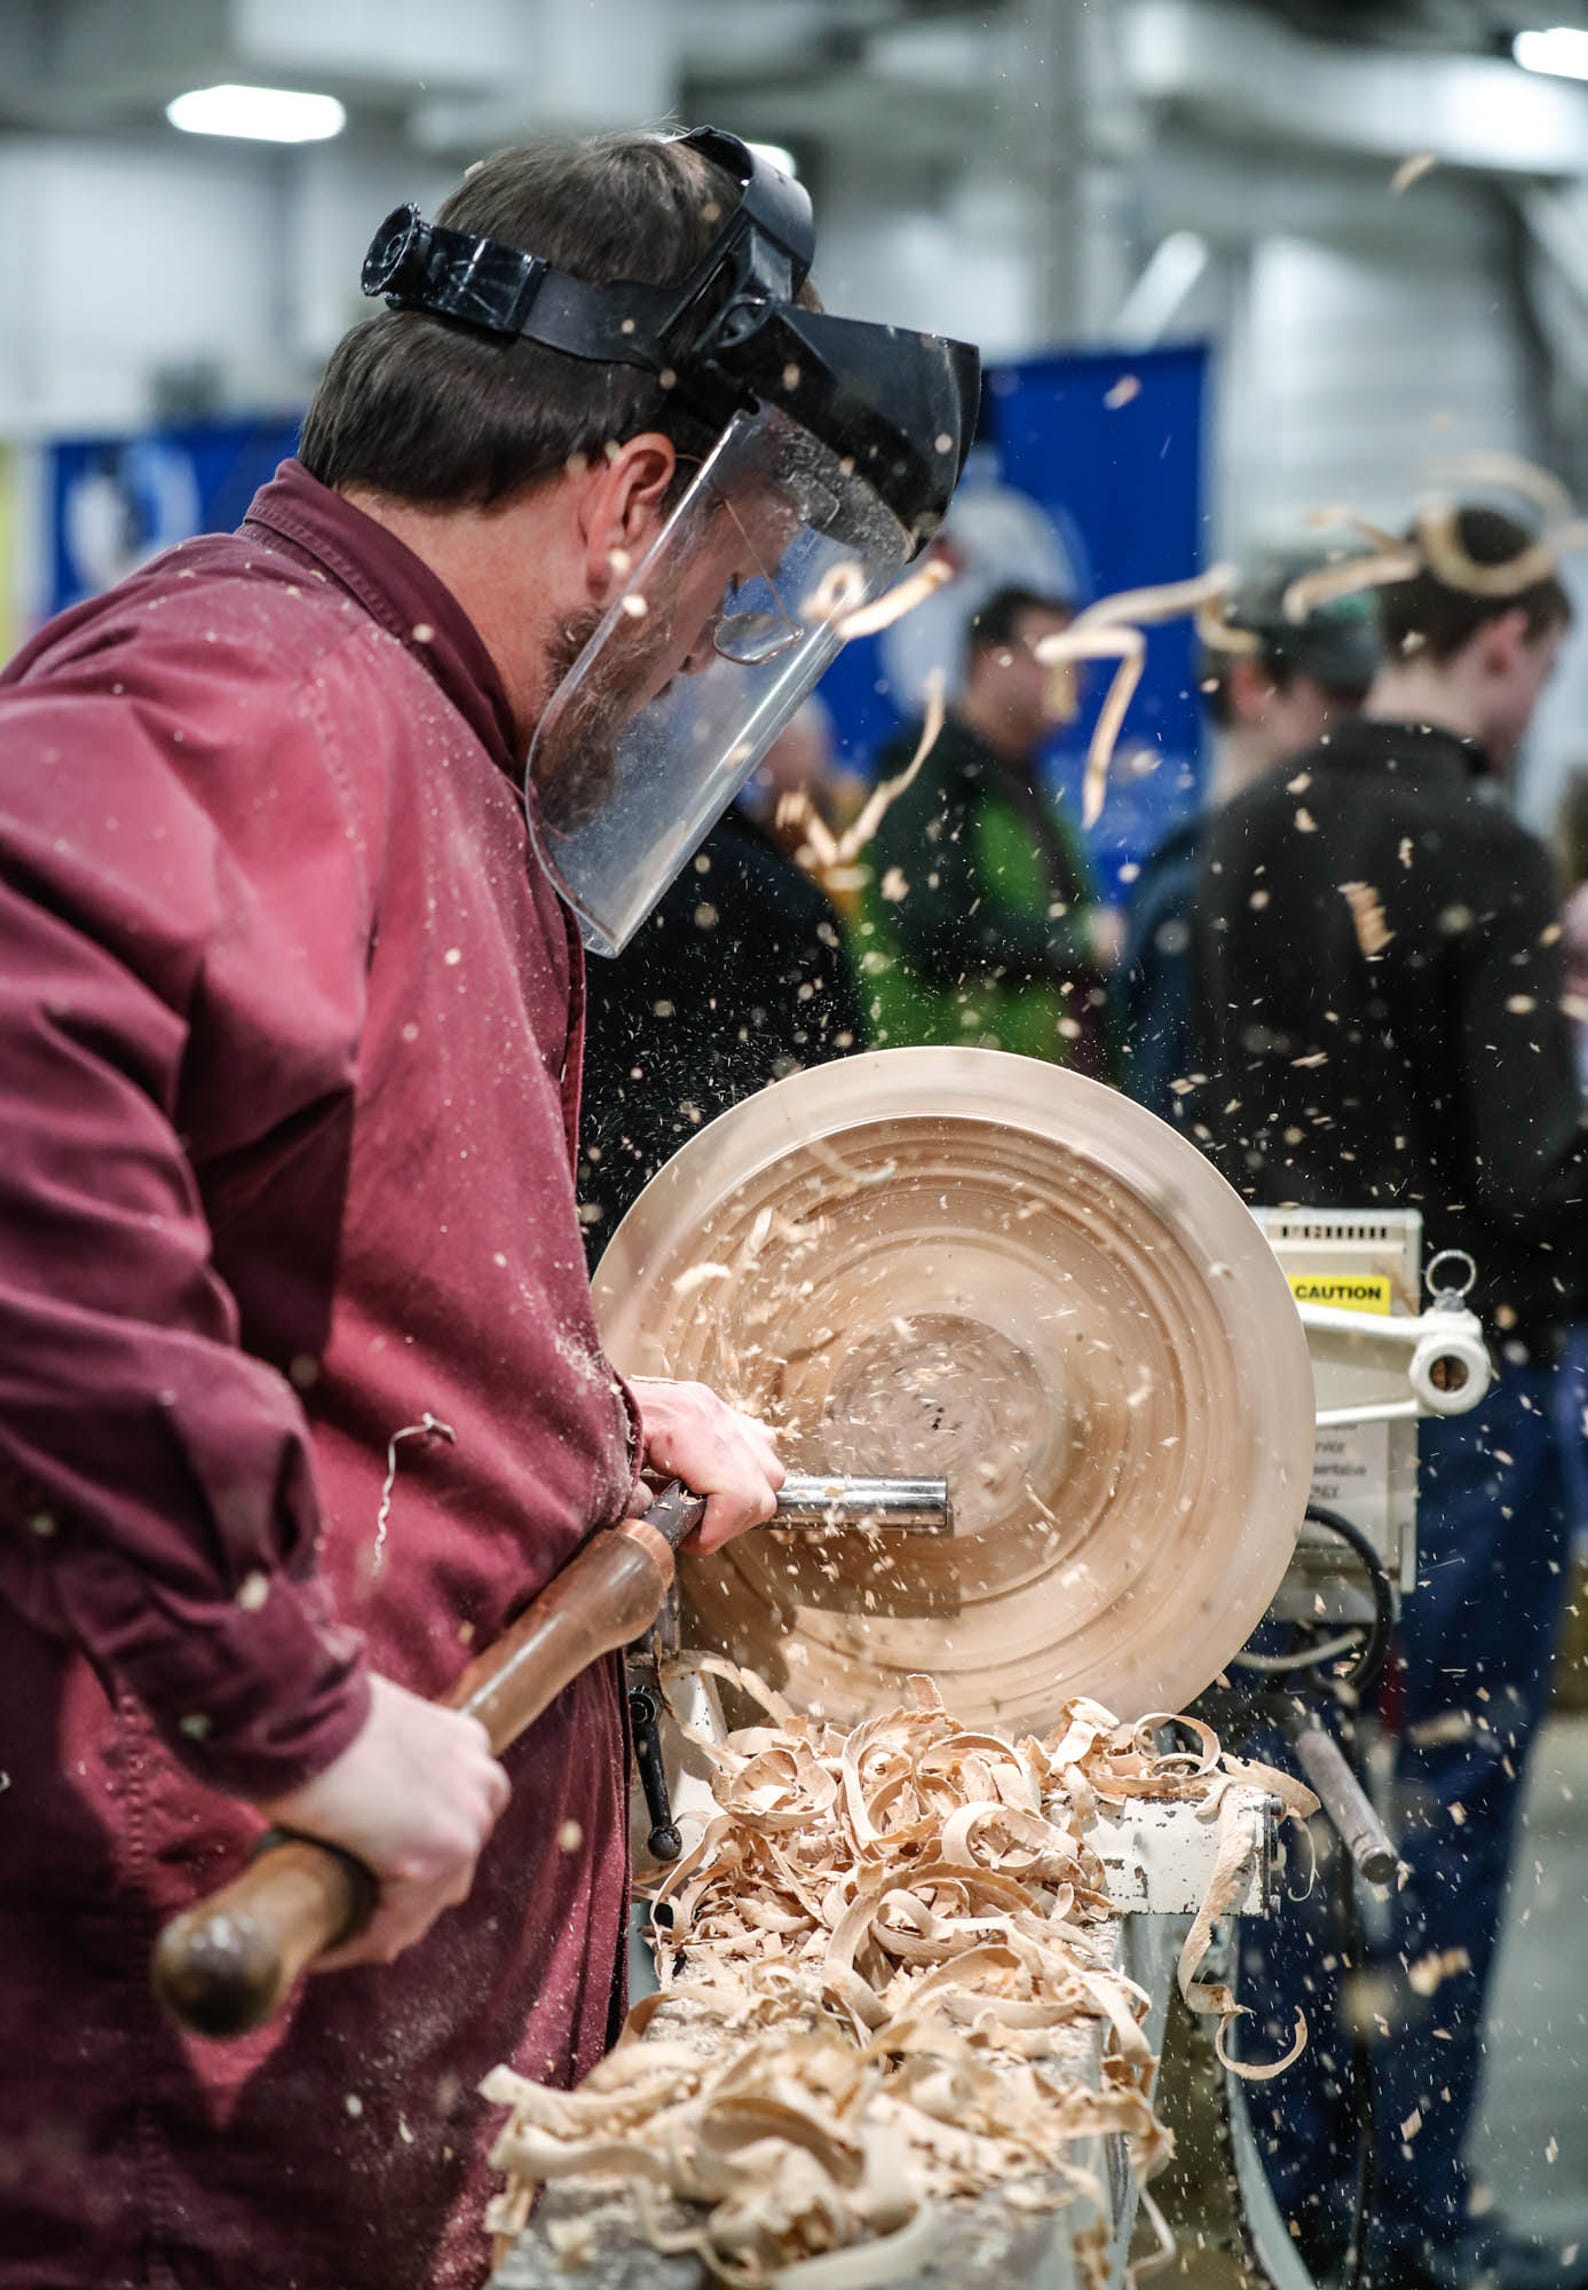 Wood Working Shows return to the Indiana State Fairgrounds